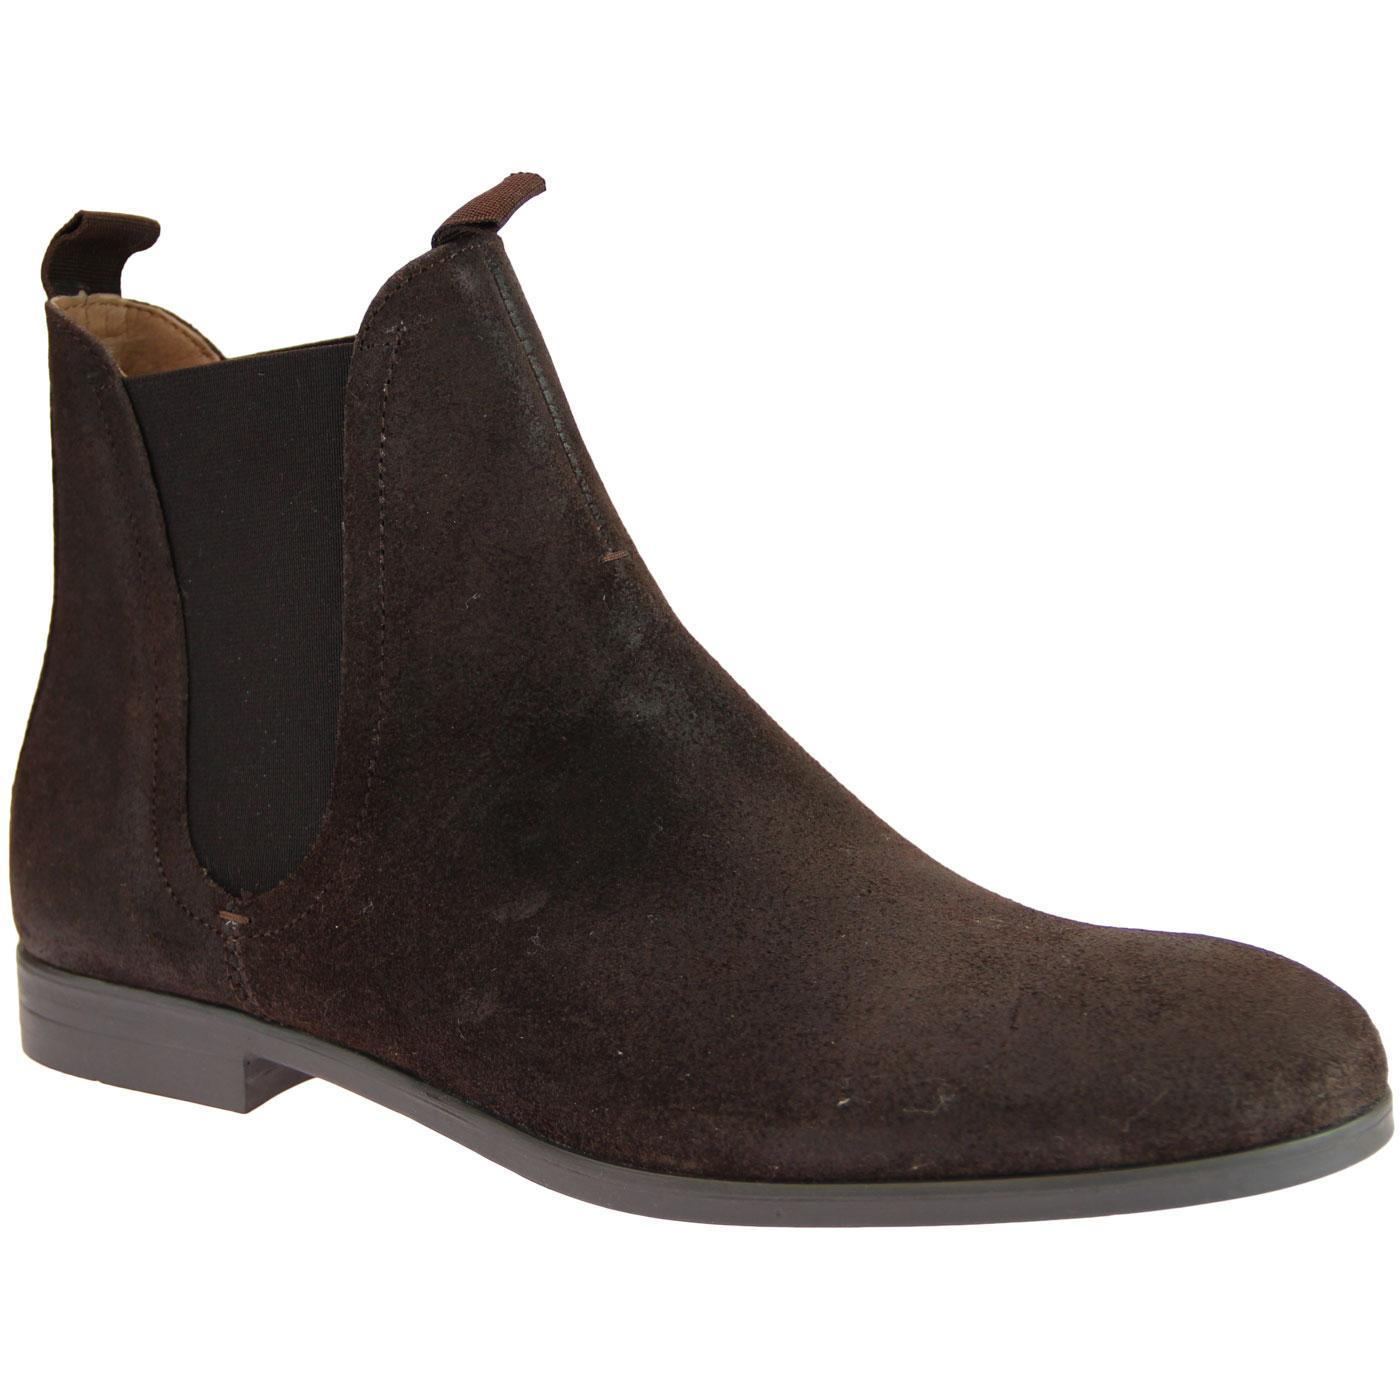 Atherstone HUDSON Mod Suede Chelsea Boots (Brown)